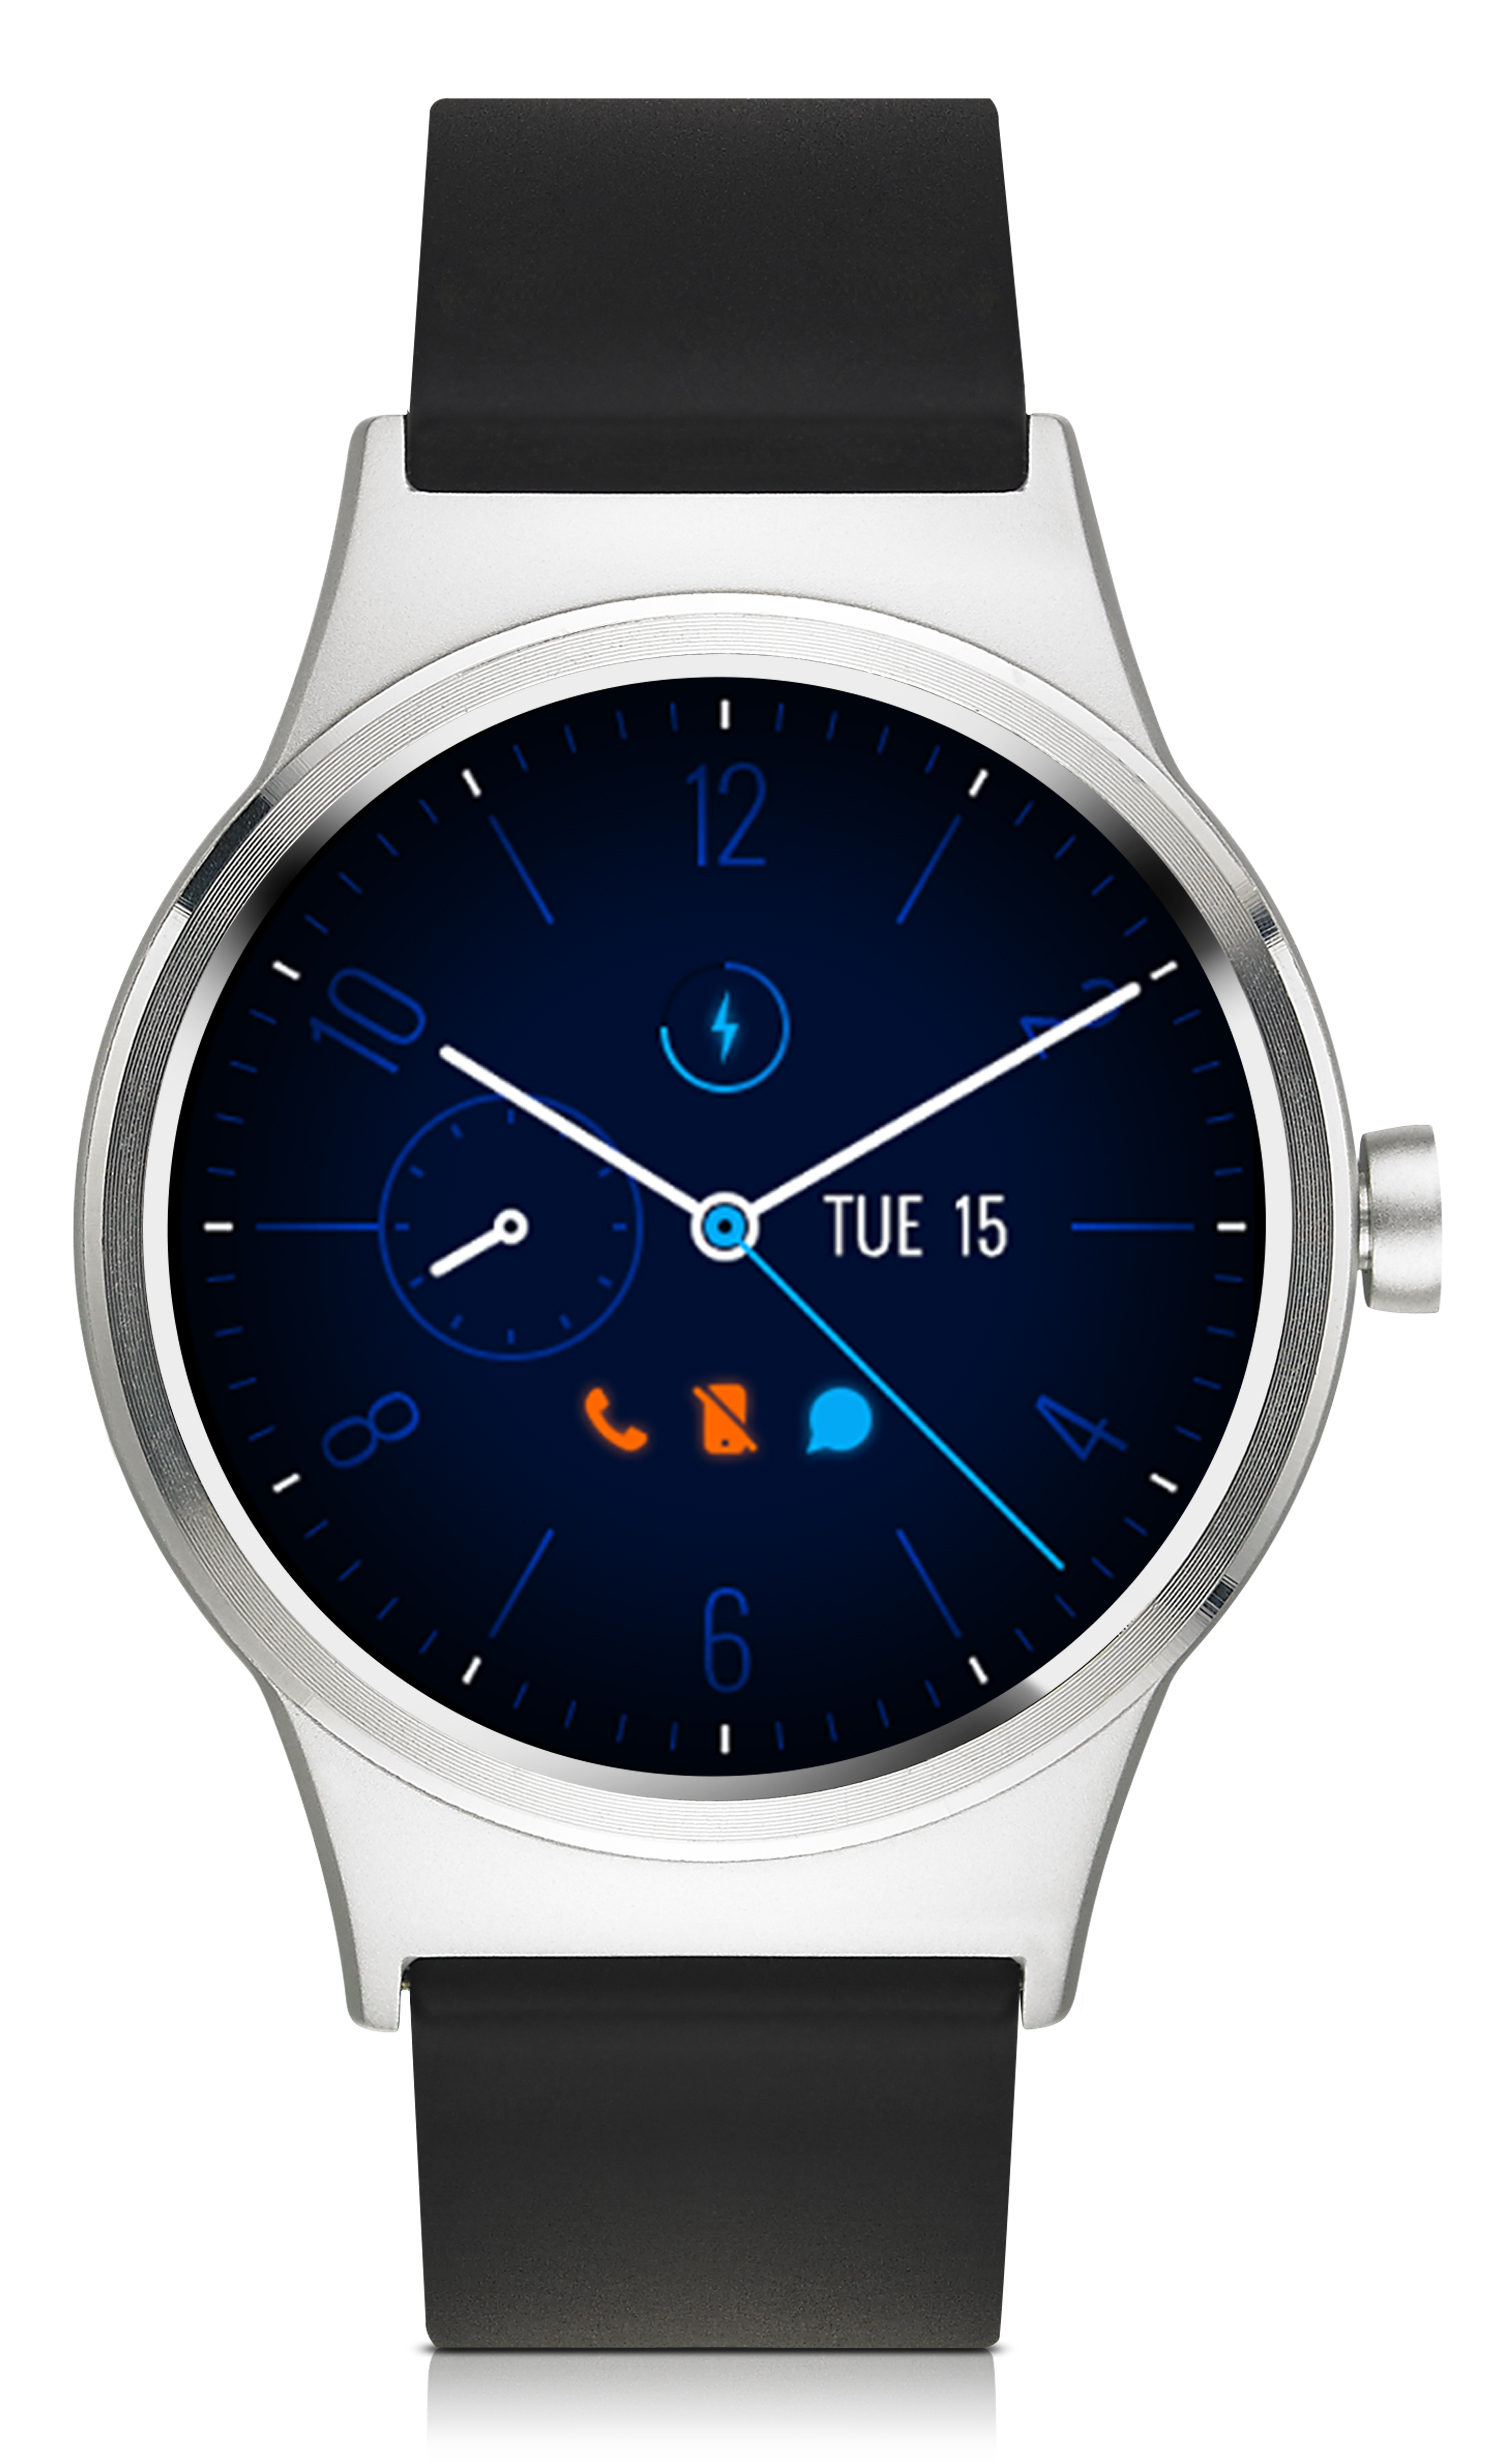 TCL MOVETIME Smartwatch, Leather, Silver/Black